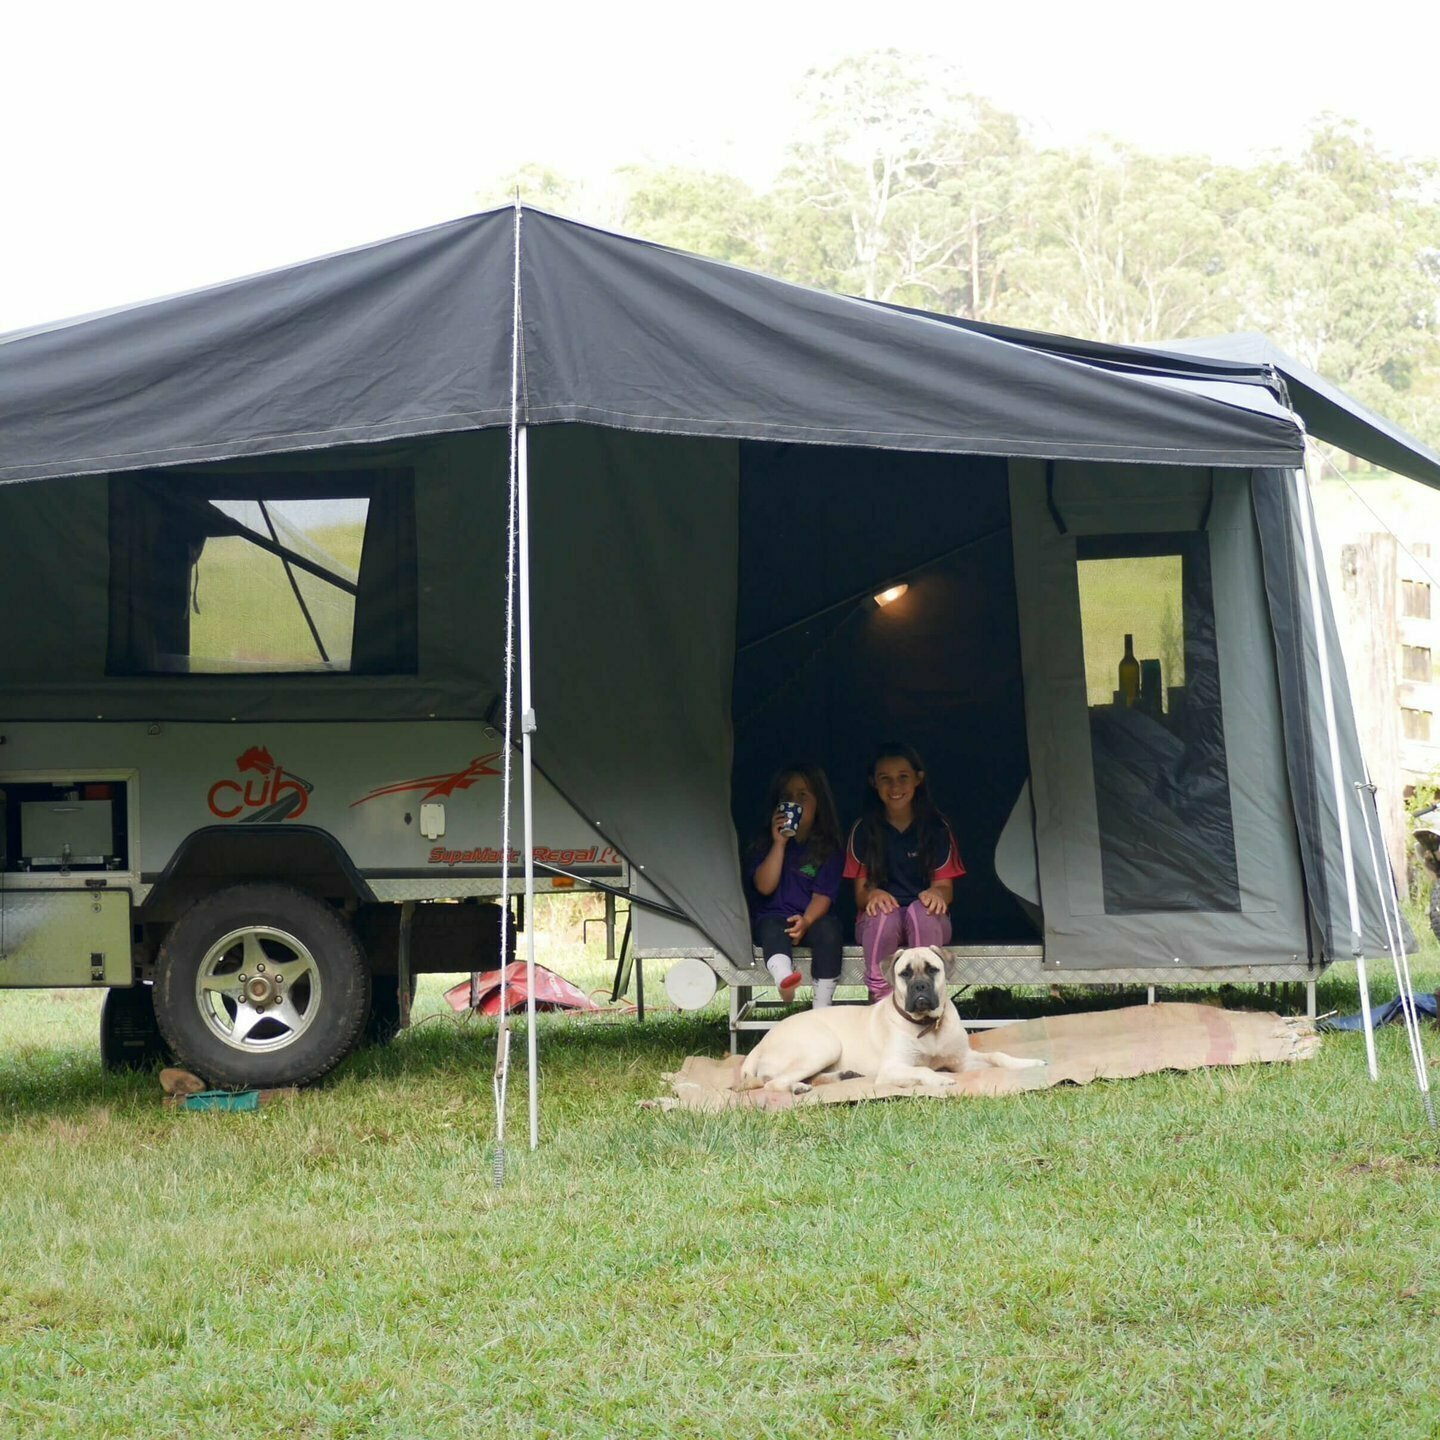 The Redbankway Cub Camper (ON-SITE HIRE ONLY) - Cover Image